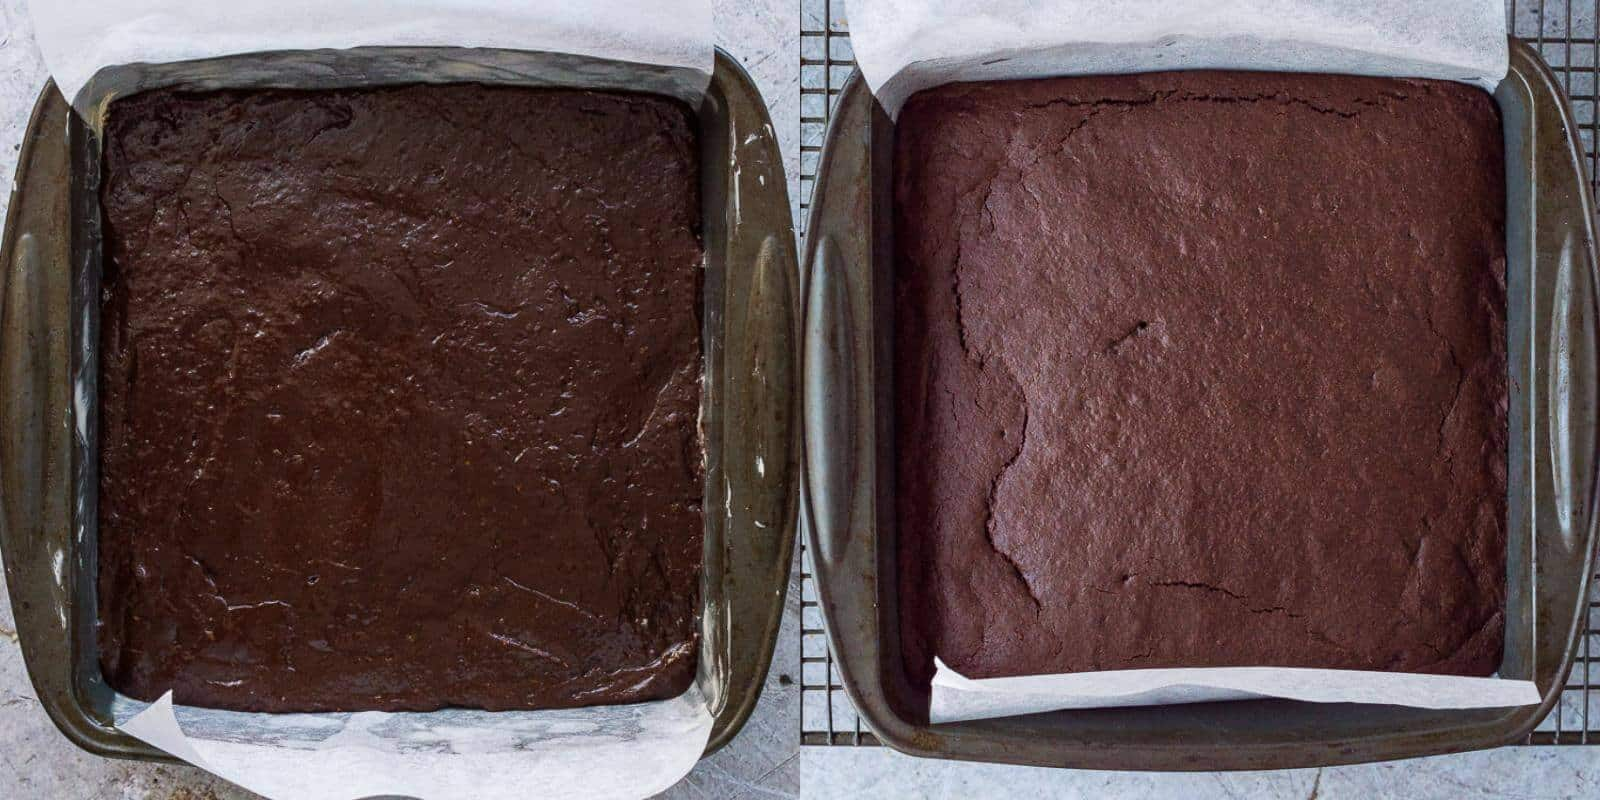 step 4 - baking the brownies